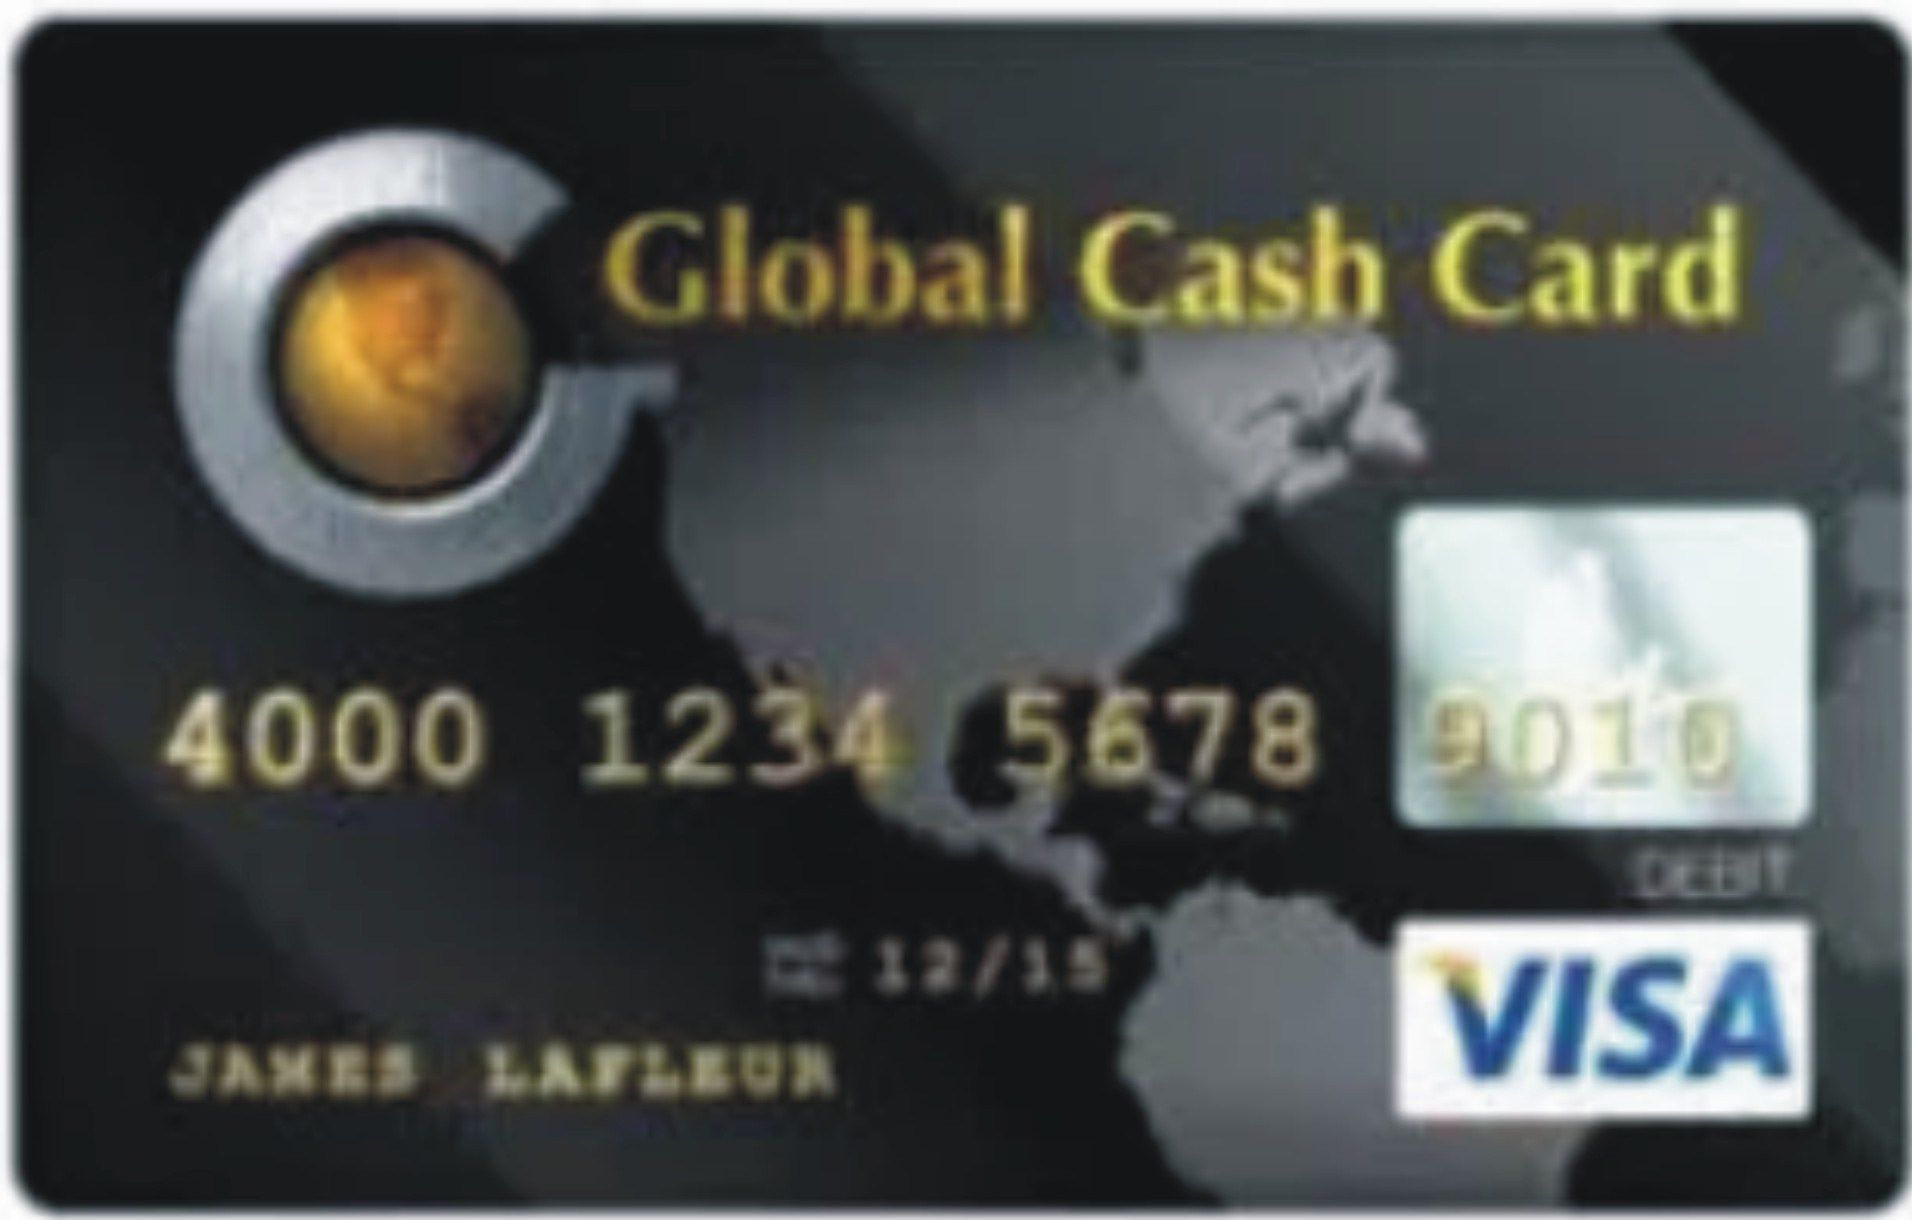 Global cash card prepaid credit cards with images